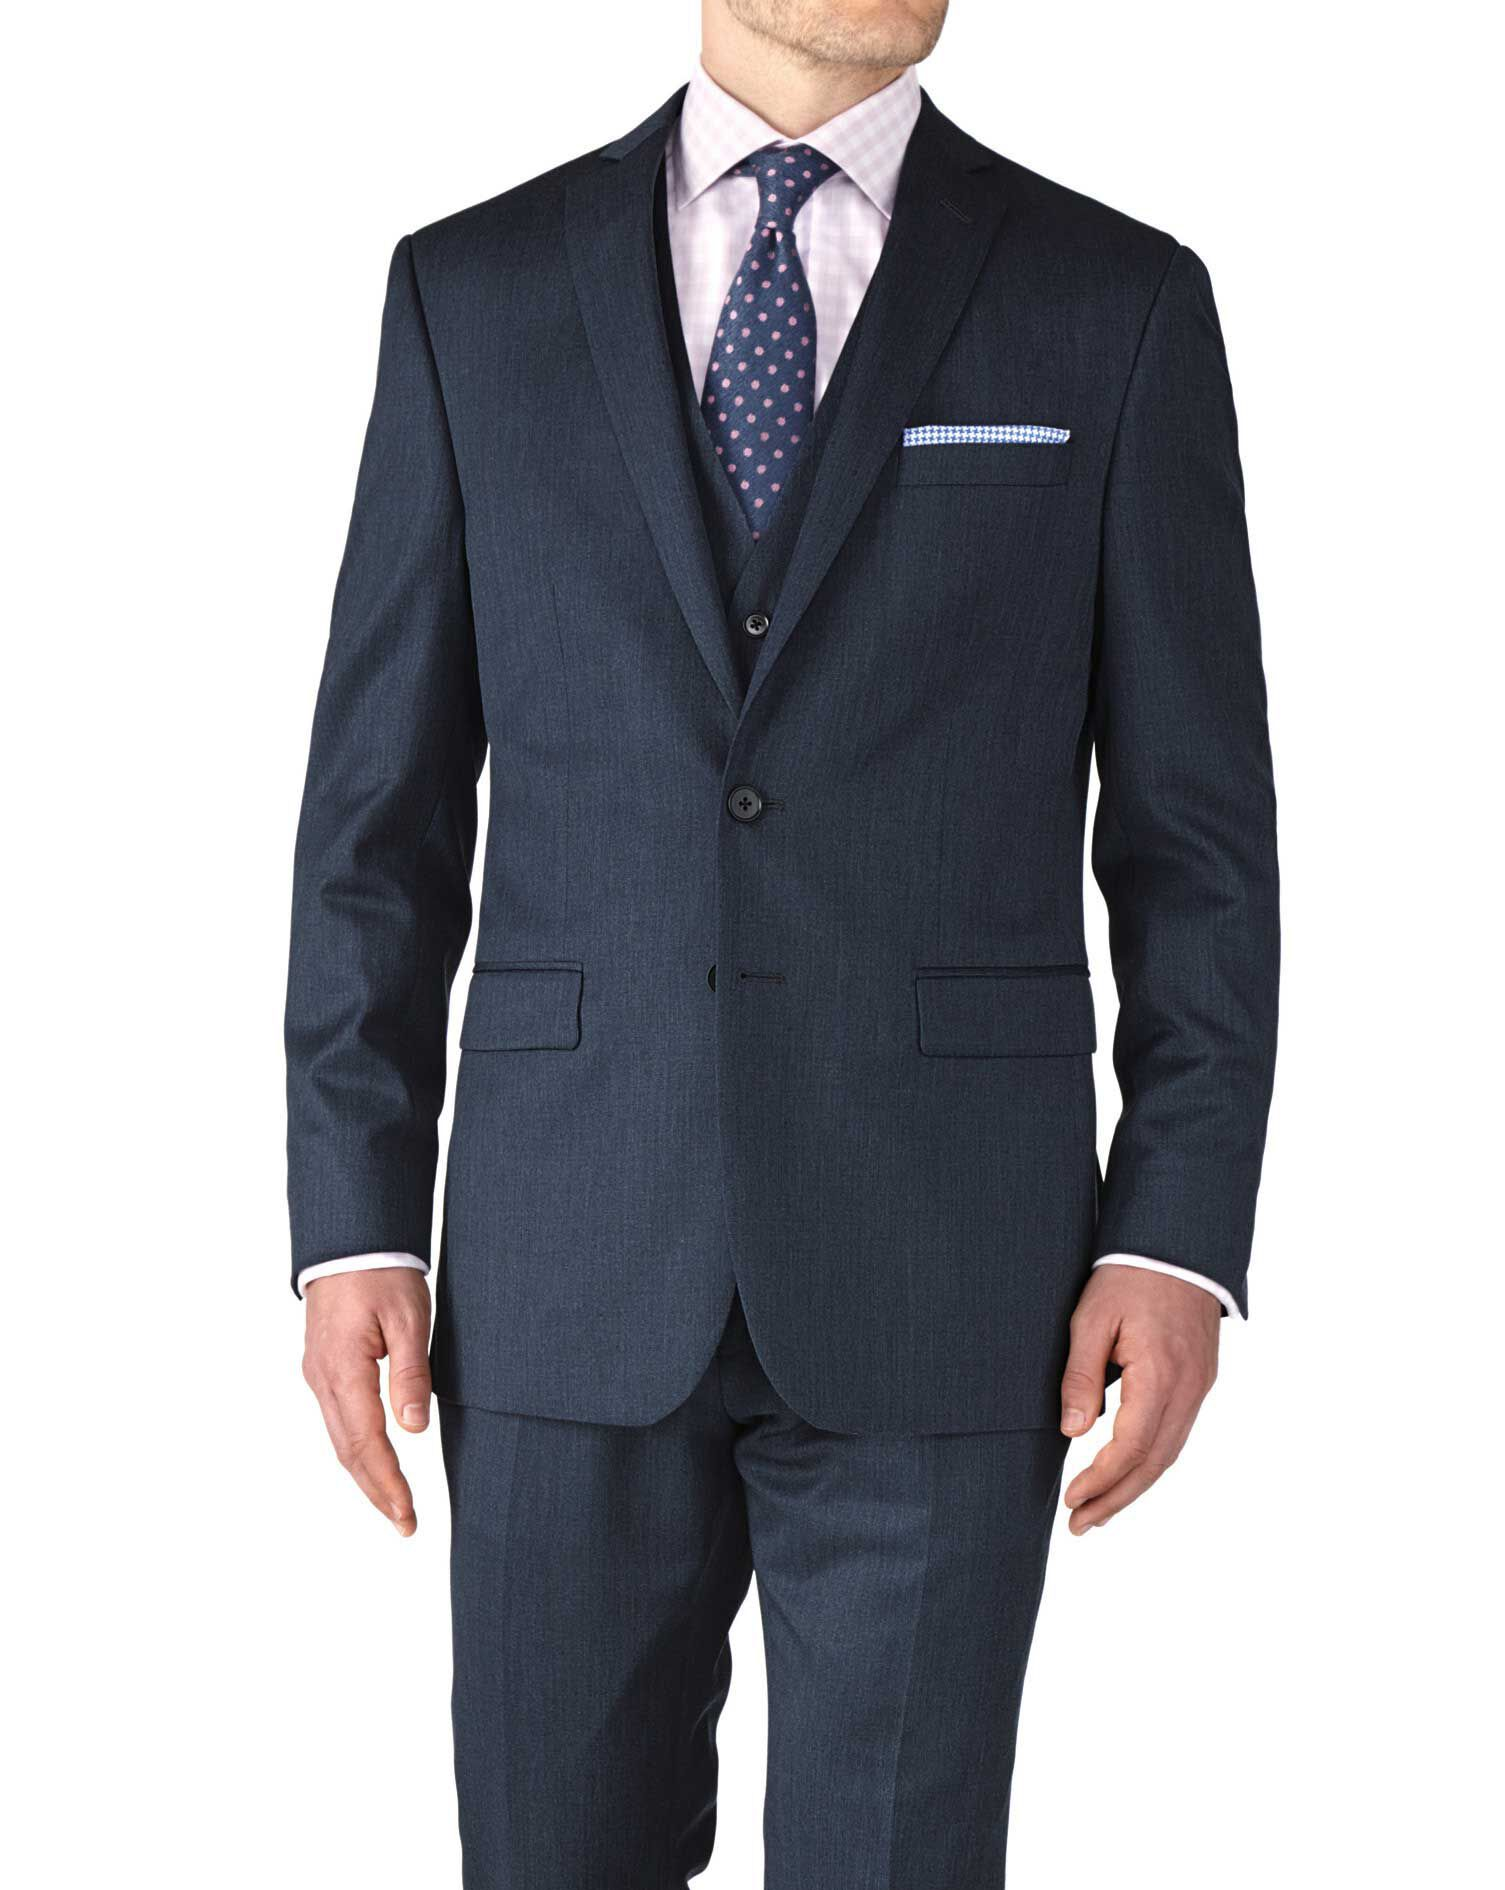 Airforce Blue Slim Fit Twill Business Suit Wool Jacket Size 46 Regular by Charles Tyrwhitt